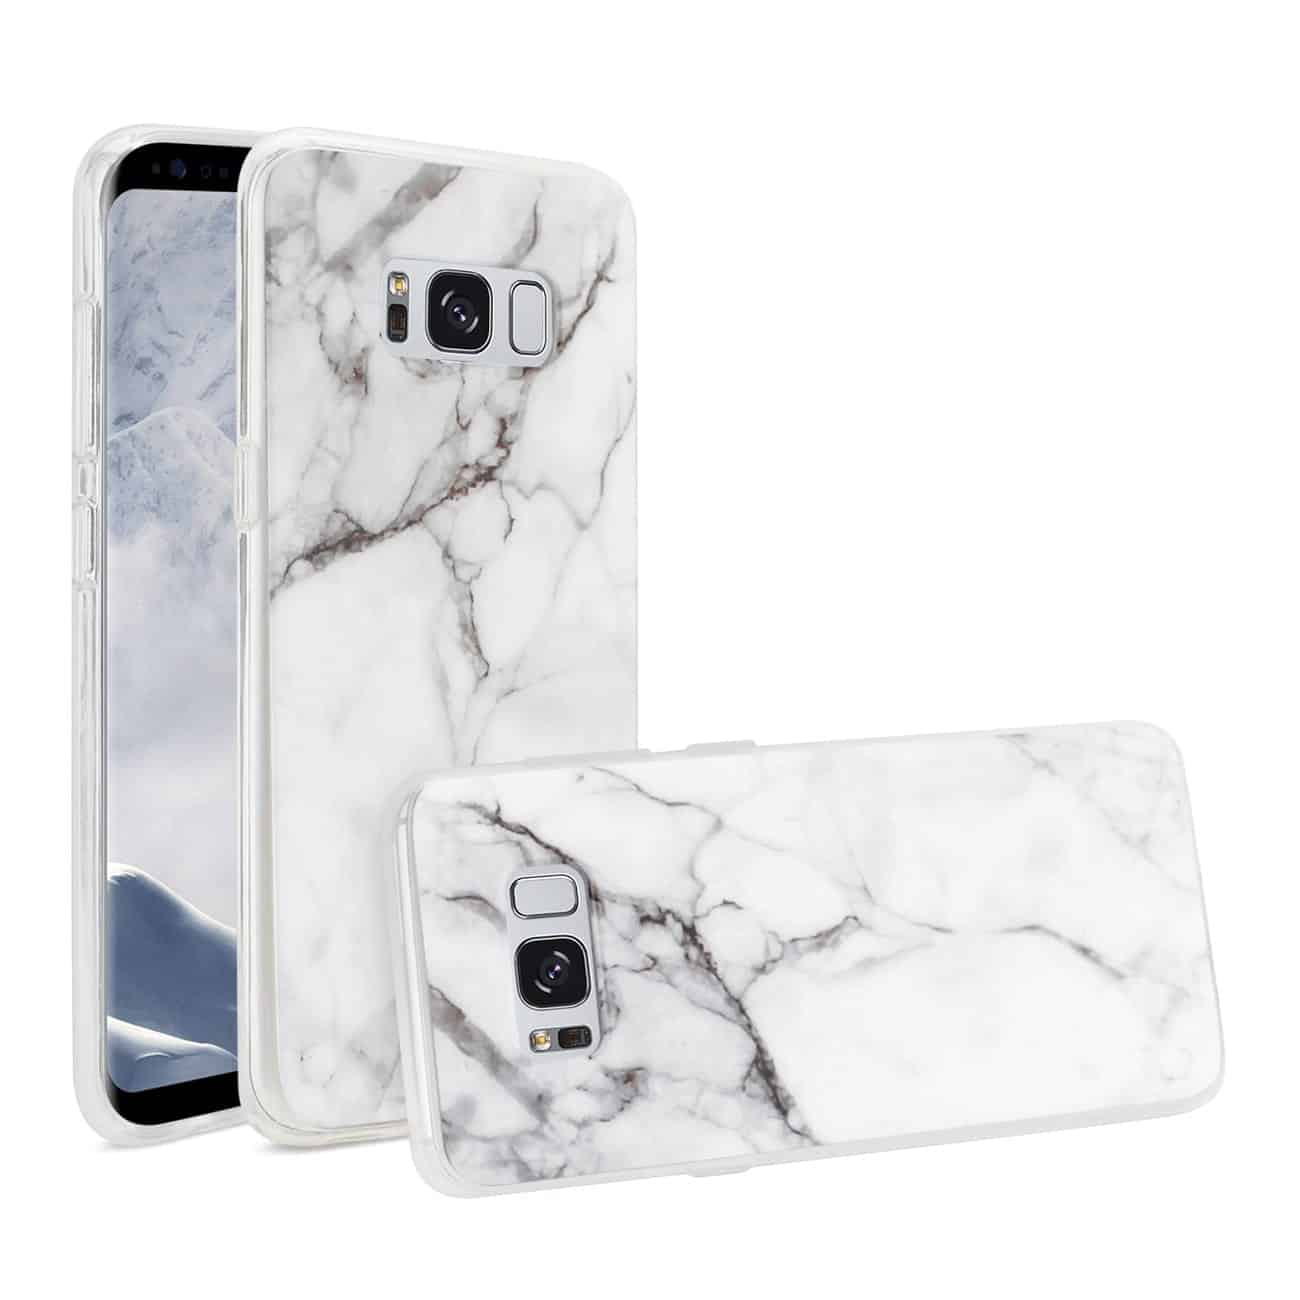 SAMSUNG GALAXY S8 EDGE/ S8 PLUS STREAK MARBLE COVER IN WHITE